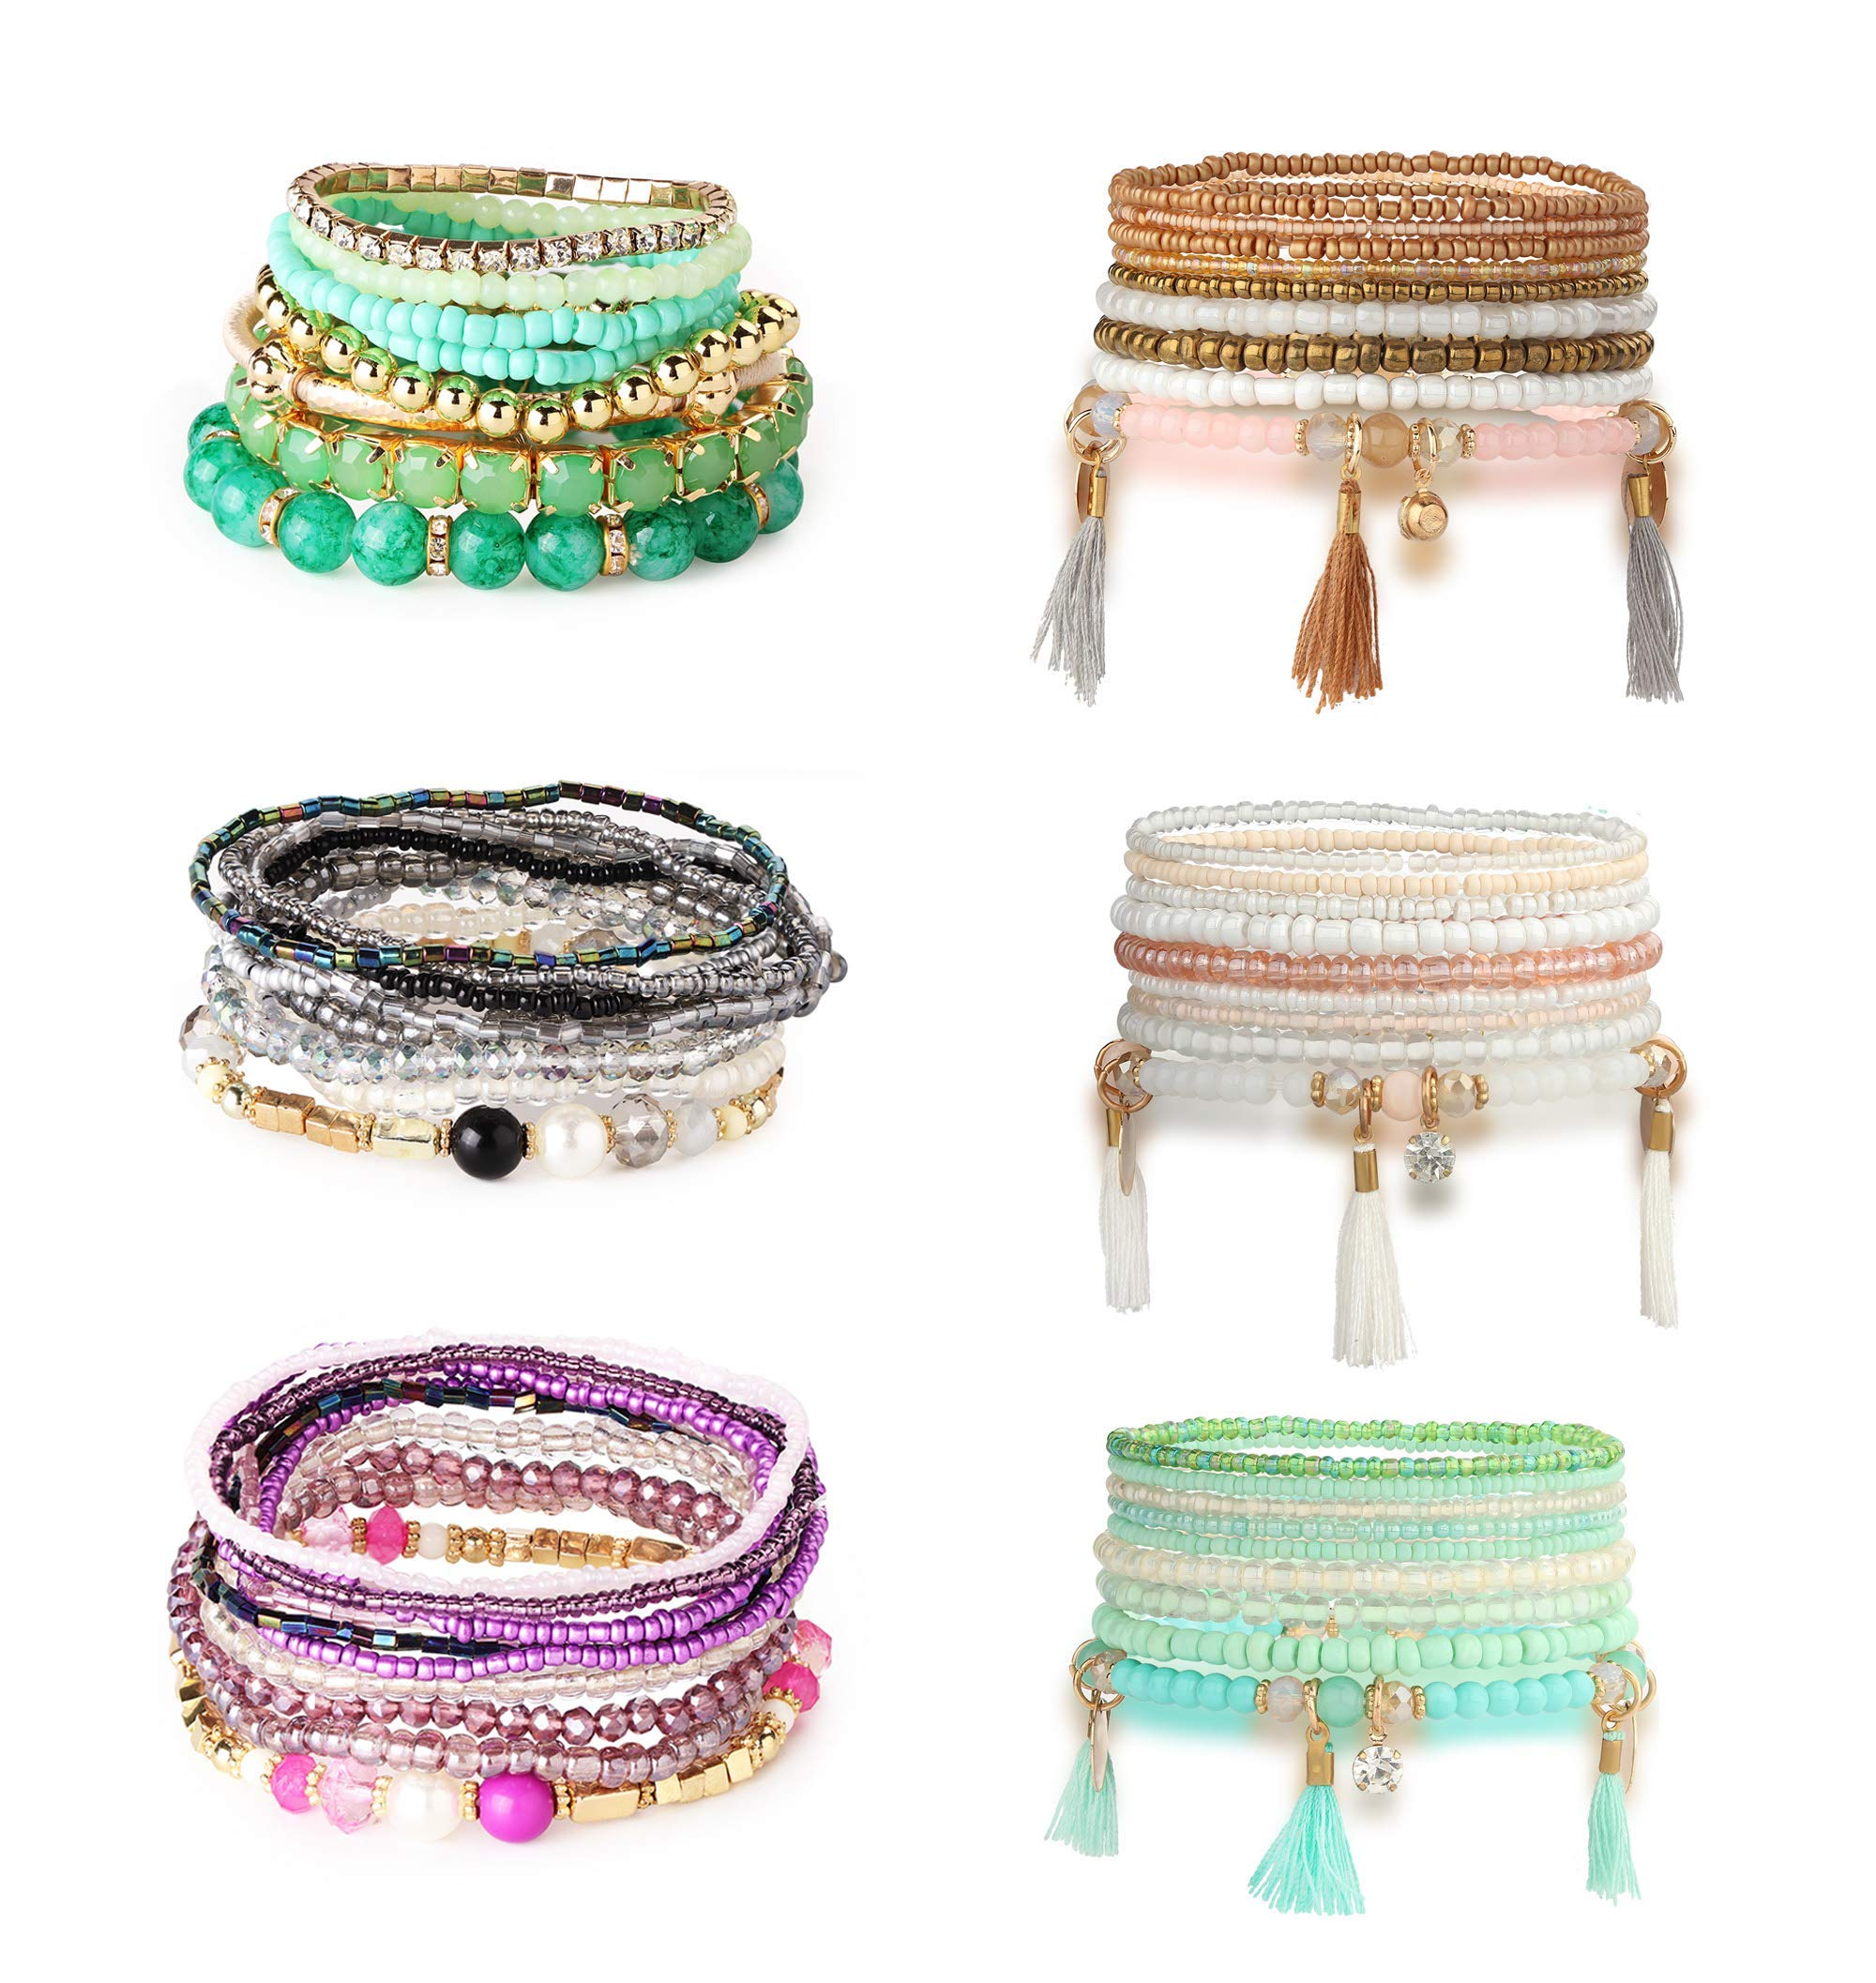 Hanpabum 6 Sets Bohemian Beaded Bracelets for Women Girls Multicolor Stretch Multilayered Stackable Bracelet Set by Hanpabum